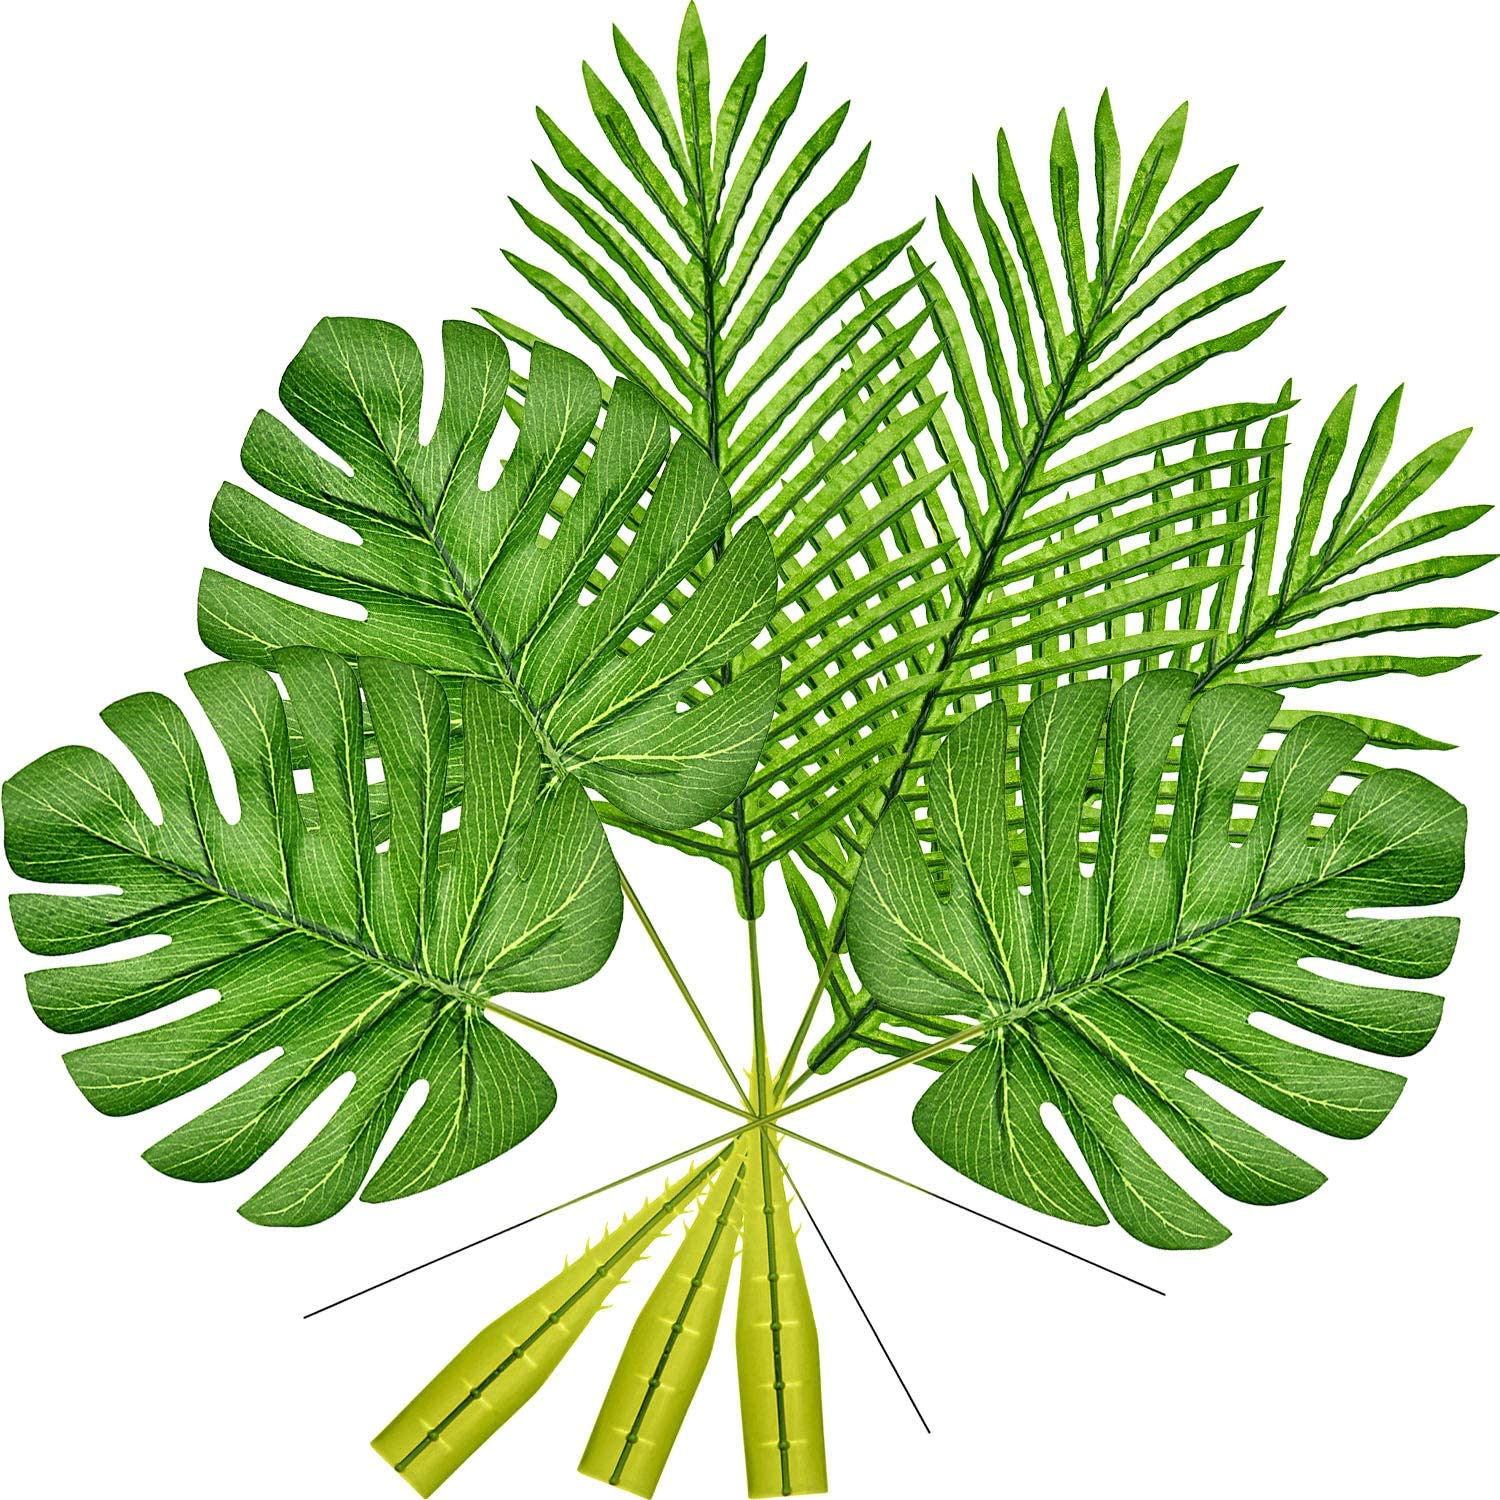 Amazon Com Frienda 10 Pack Artificial Tropical Palm Leaves And 10 Pack Artificial Monstera Leaves Faux Palm Tree Leaf Tropical Leaves Artificial Plant Leaves For Home Kitchen Party Decorations Home Kitchen